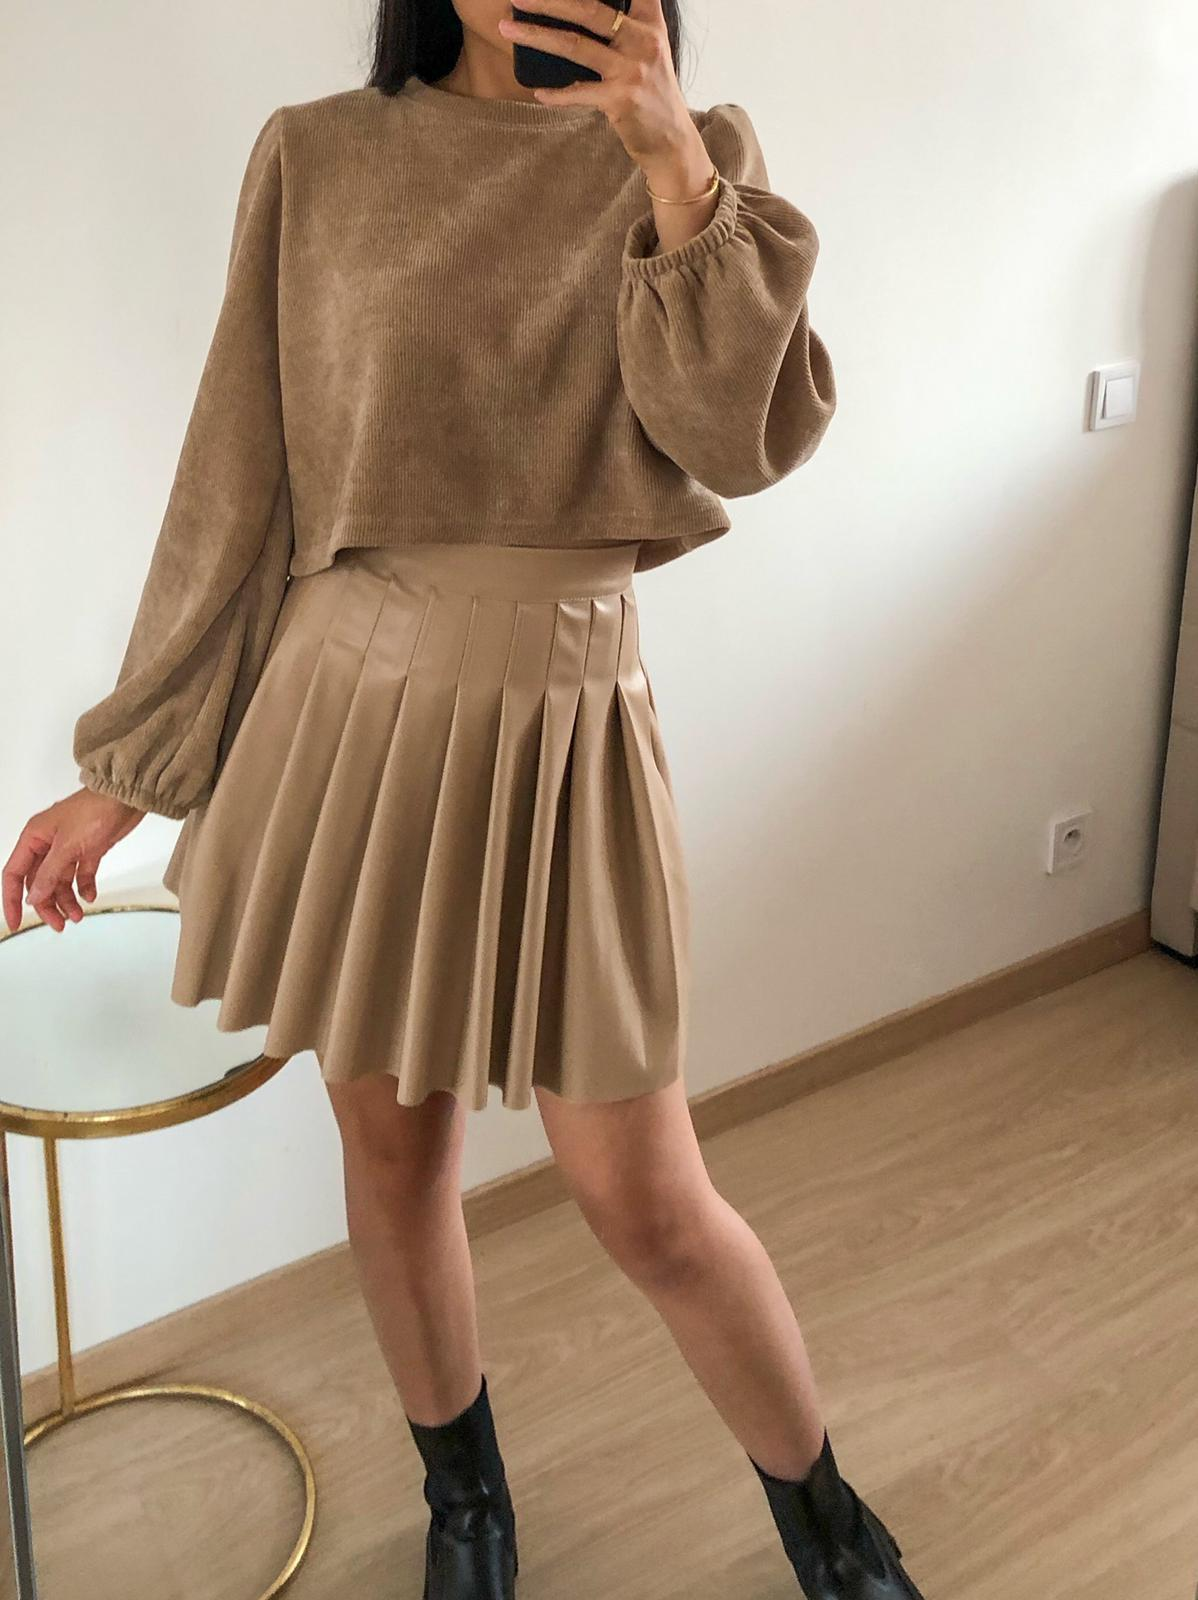 Walk Away - Beige Faux Leather Pleated Skirt